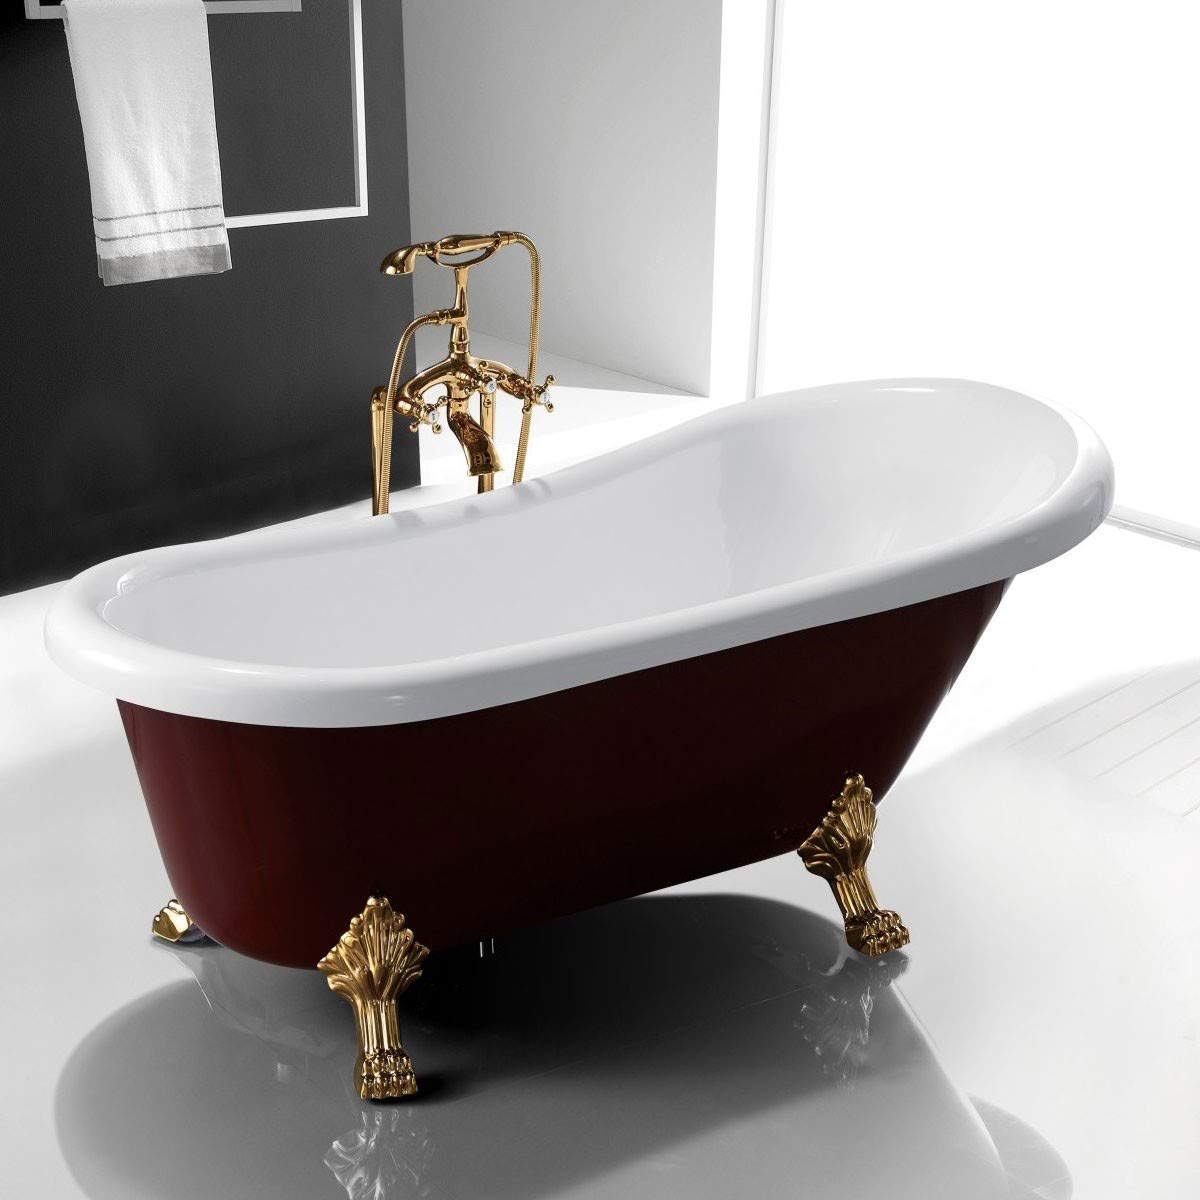 sophisticated-red-clawfoot-bathtub-with-gold-feet-white-interior-burgundy-exterior